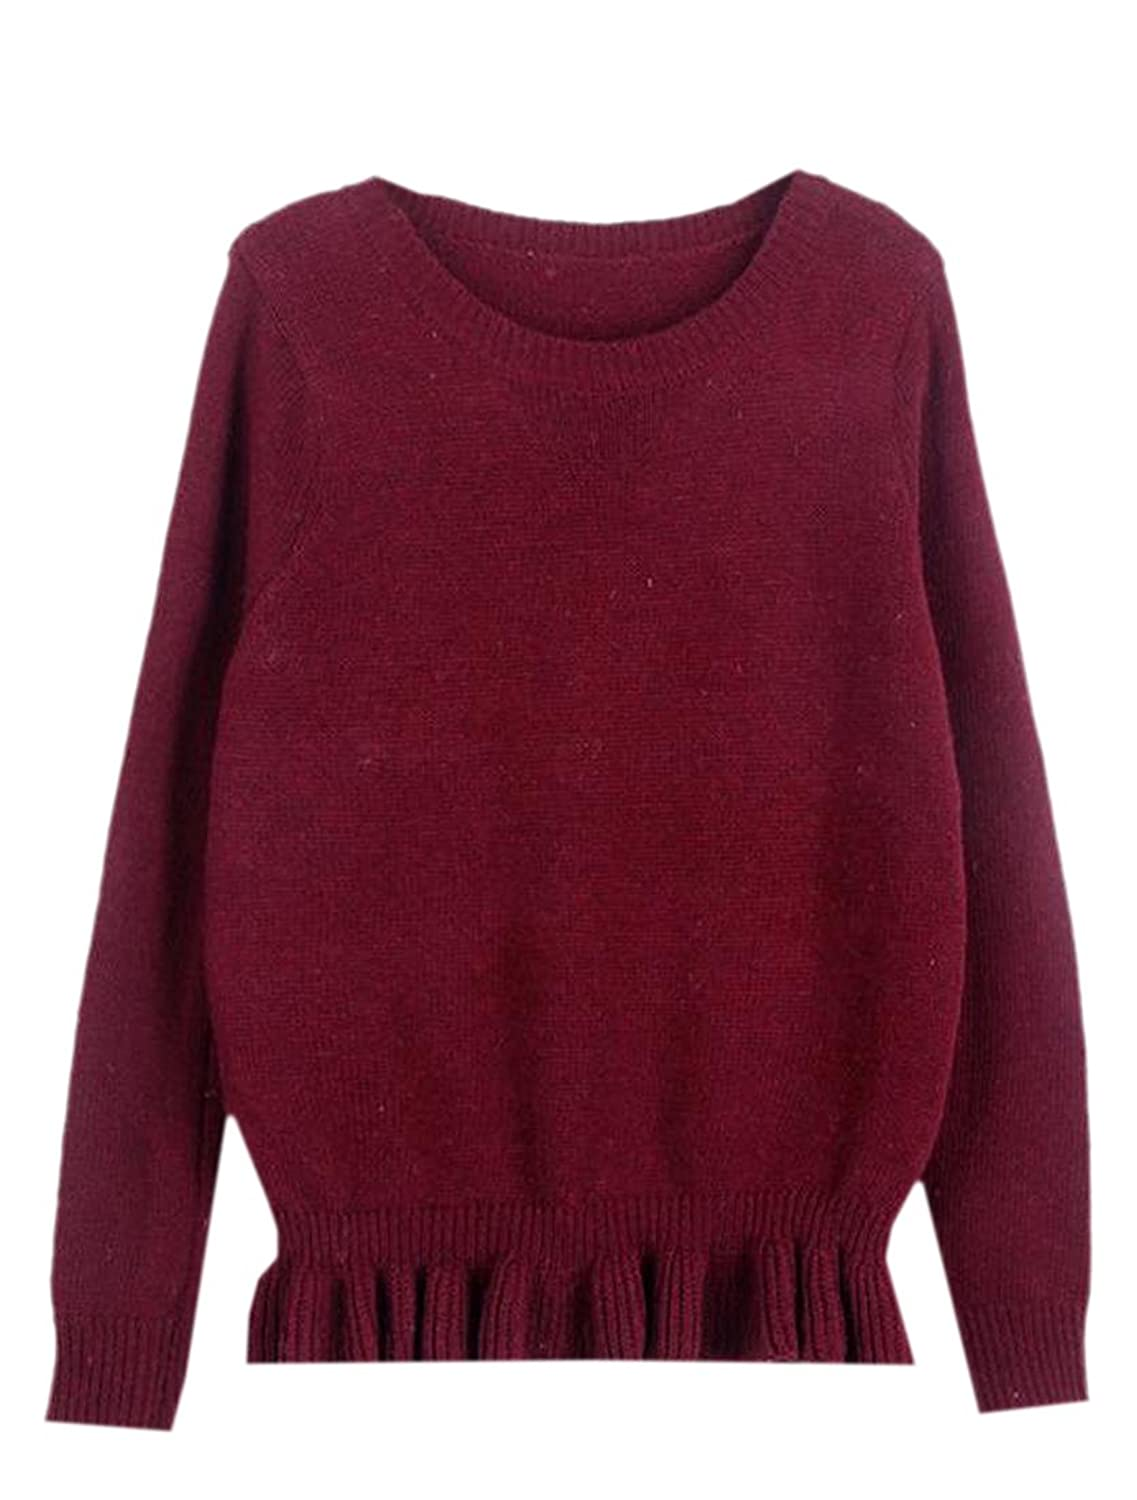 YUNY Women's Knitted Pure Color Cozy Long Sleeve Knitwear